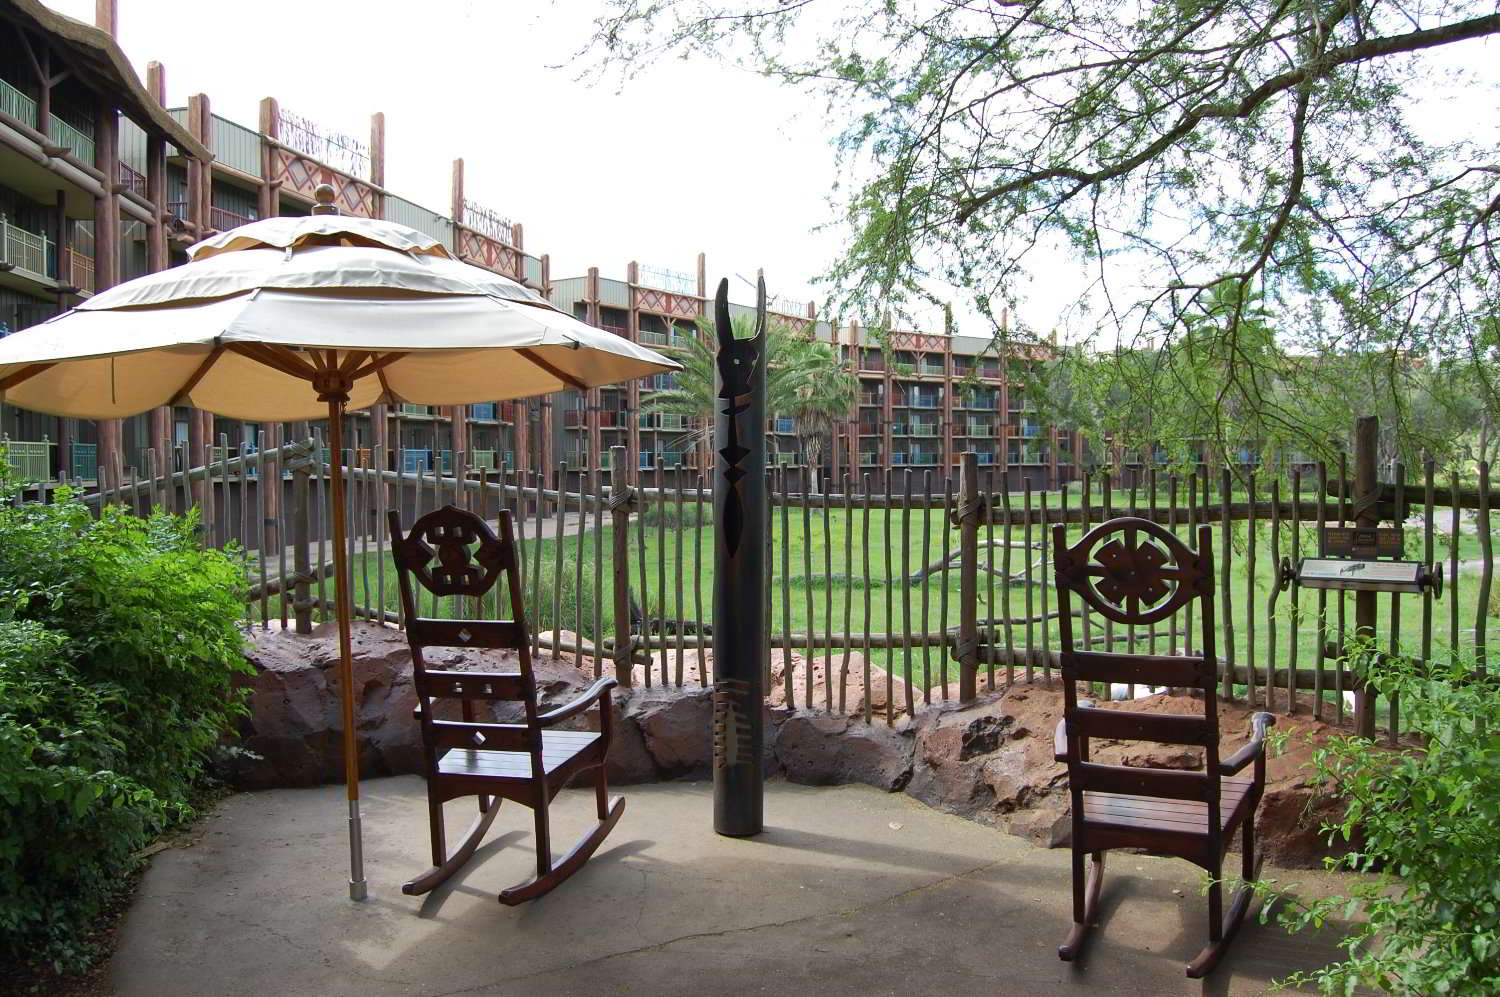 A Disney World vacation can be really busy but Disney's Animal Kingdom lodge provides lots of wonderful spaces to sit and relax and enjoy the African animals that make their home at this beautiful deluxe resort.